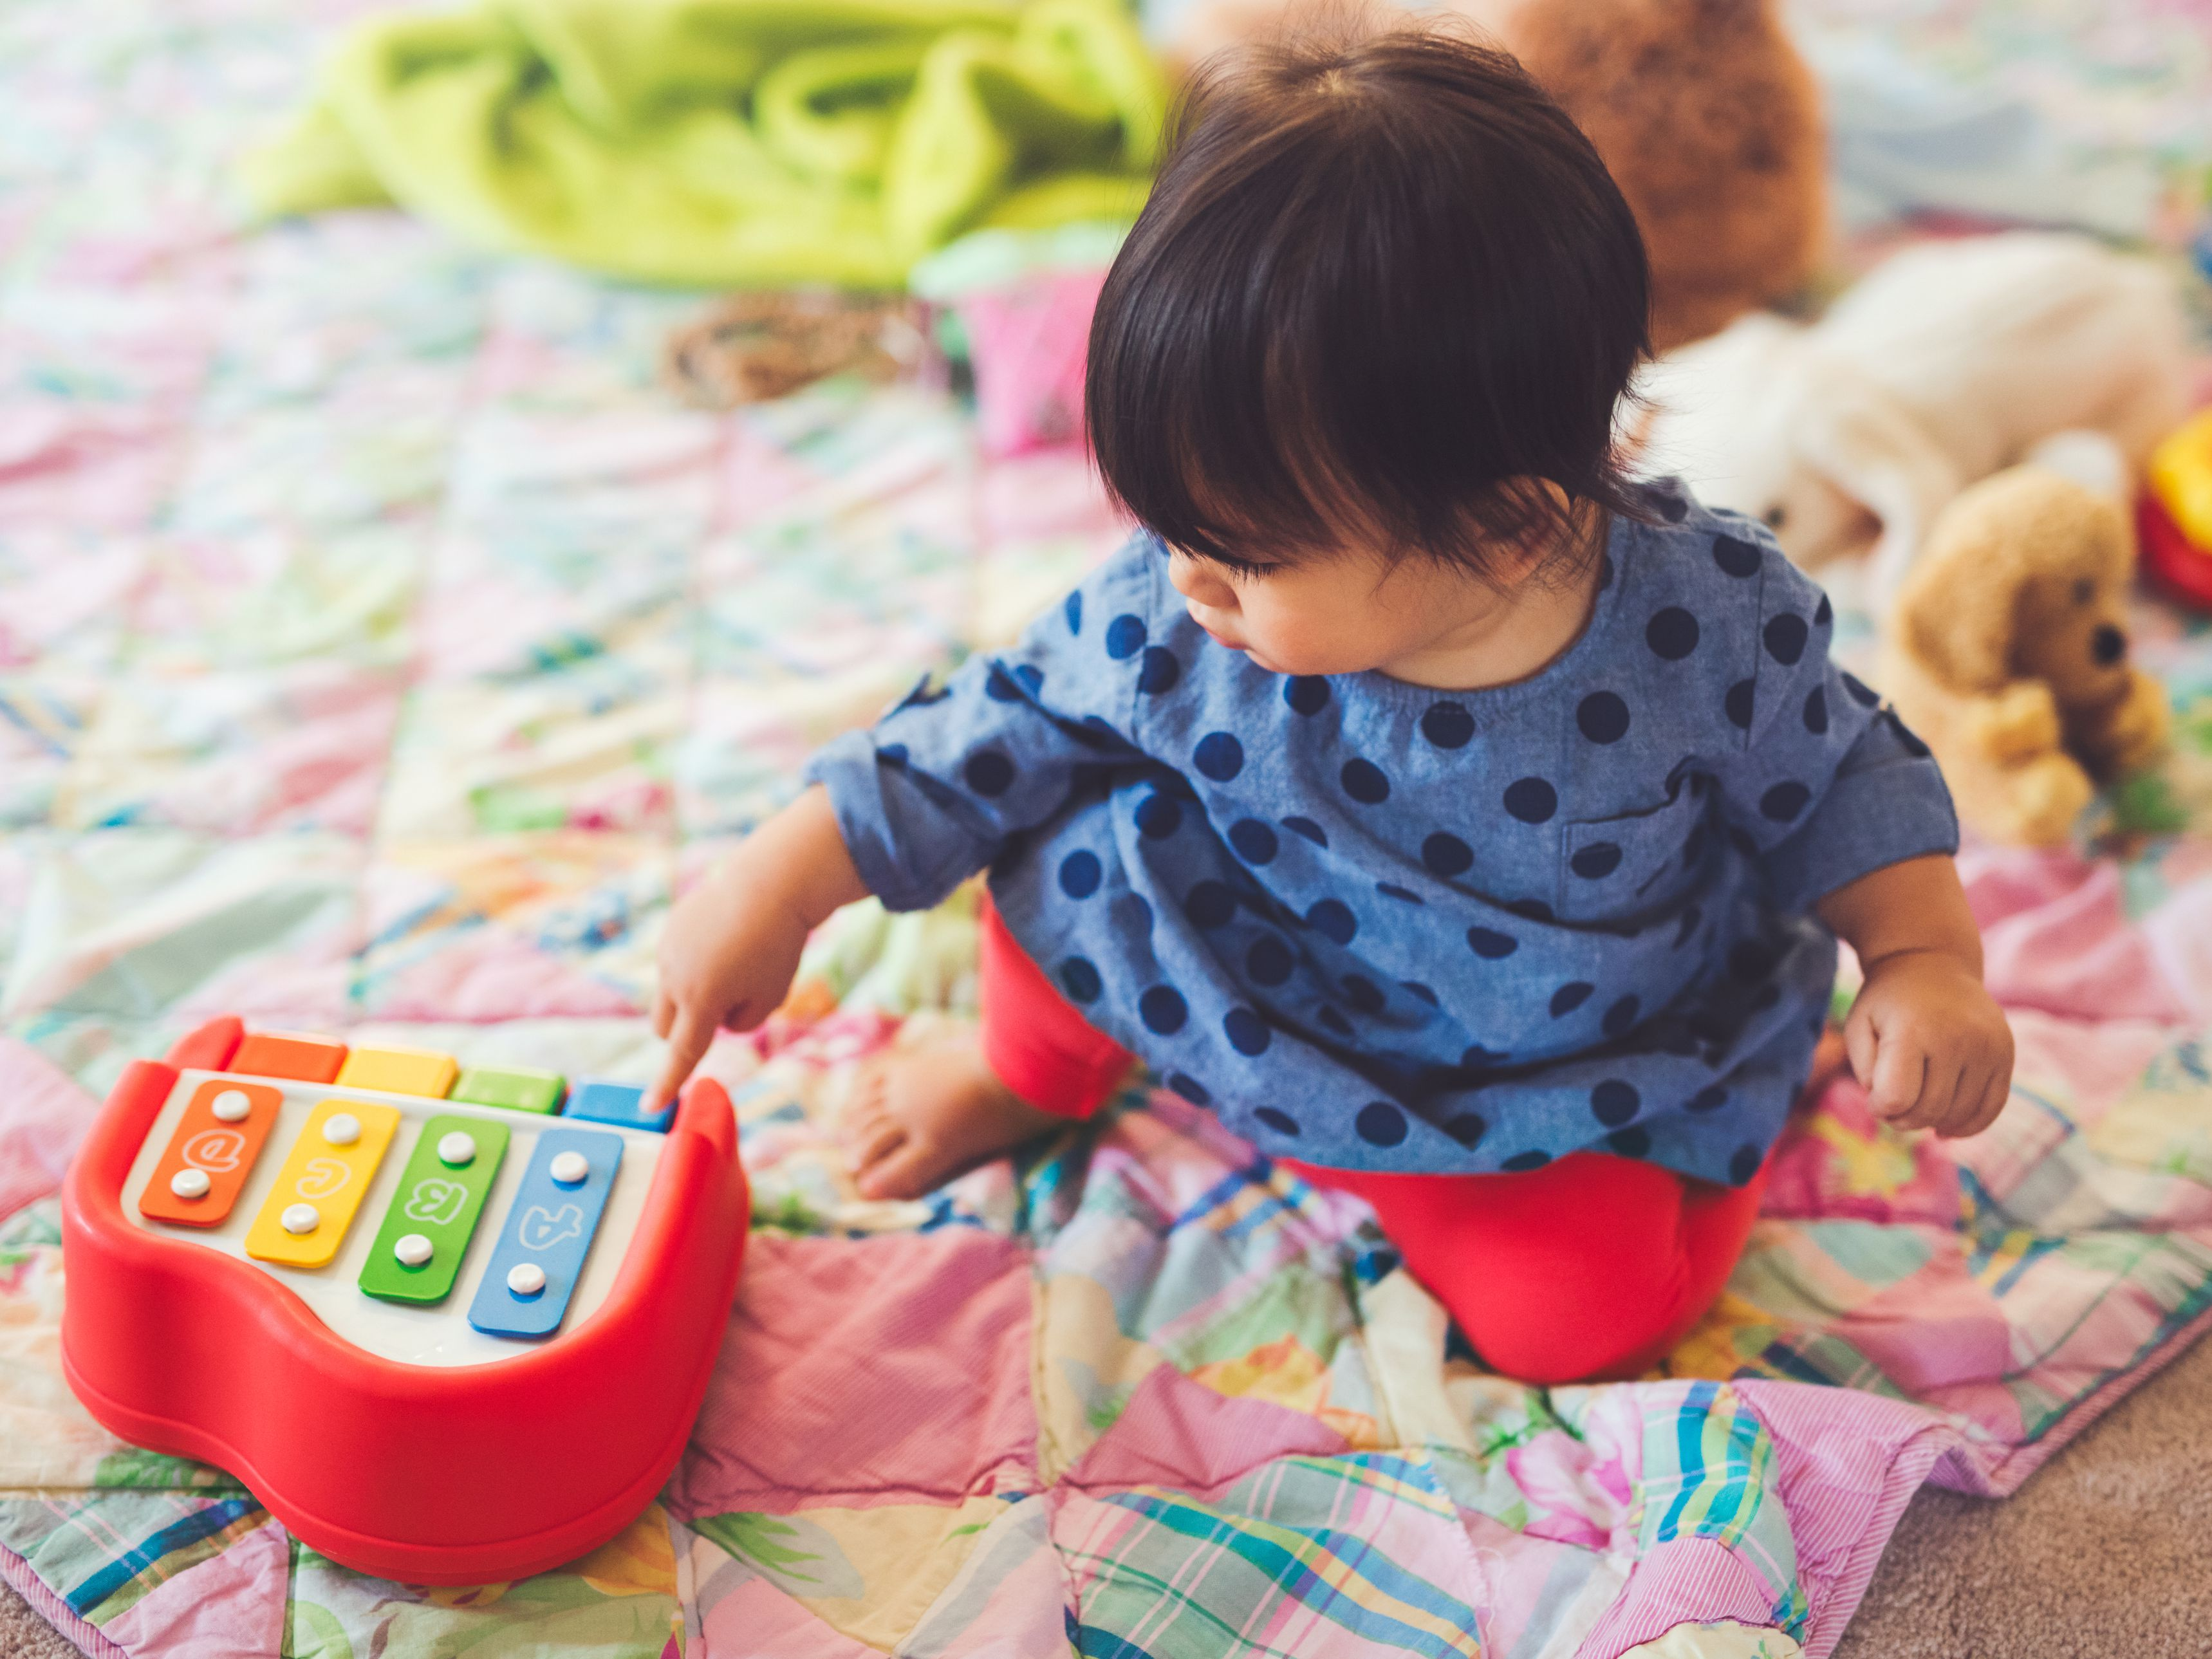 bd5cc611f89 The Best Toys for 7-Month-Olds of 2019